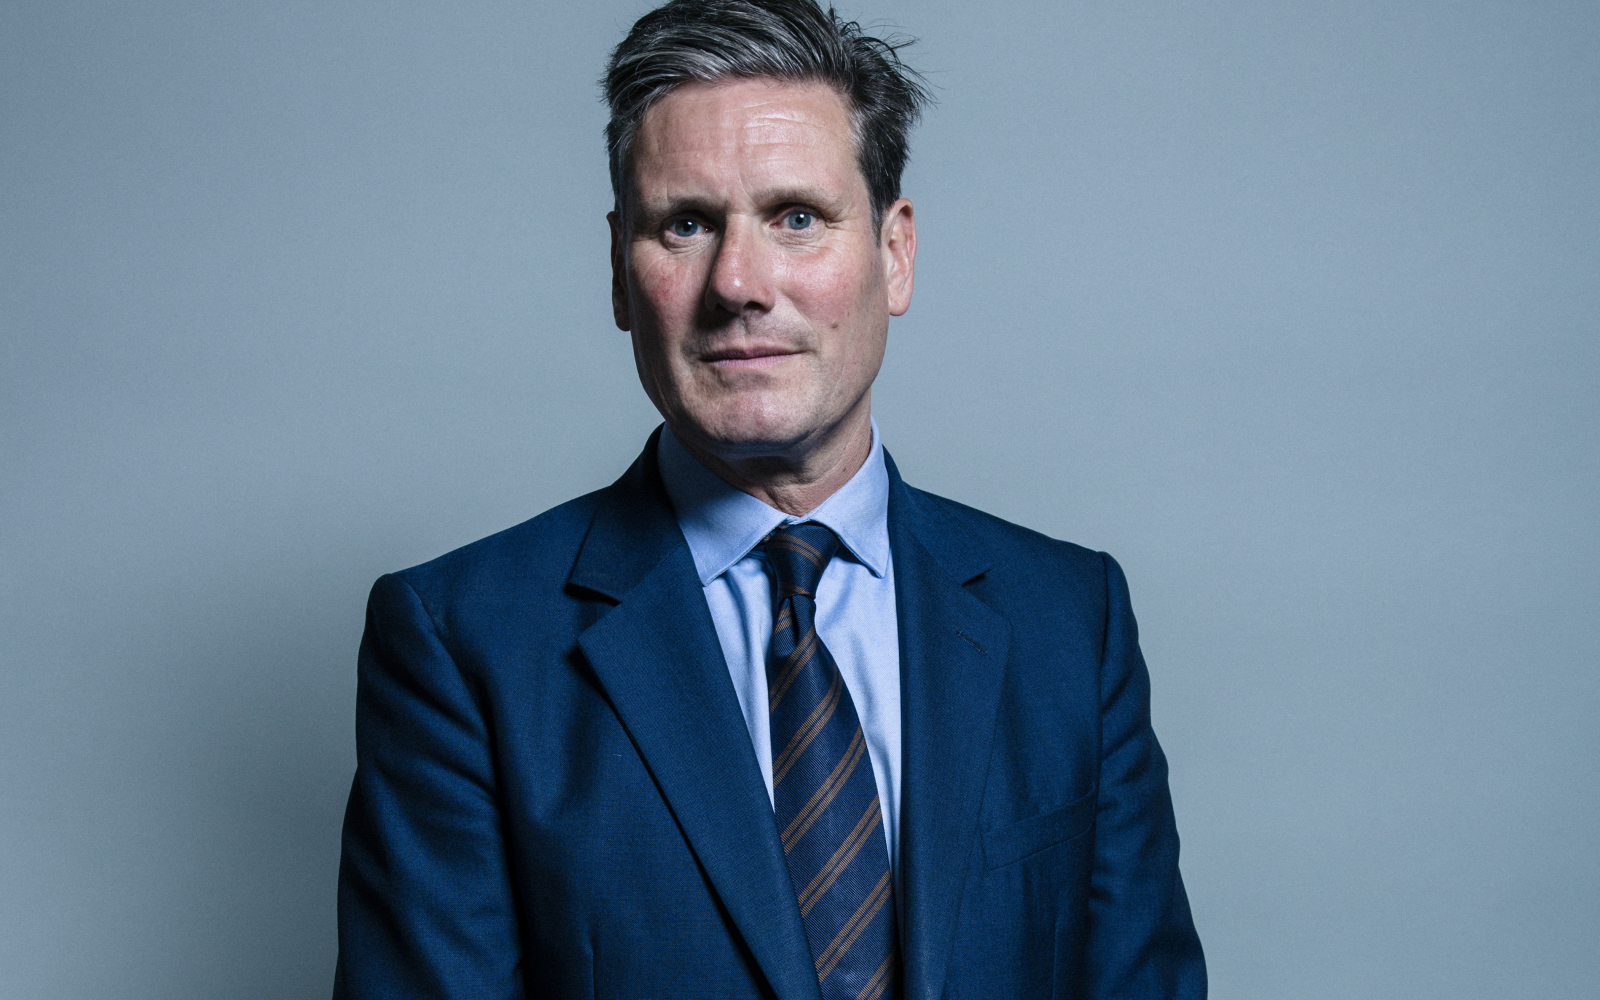 A Green New Deal and upgrades to homes were key pledges in Keir Starmer's speech. Image: Parliament.uk.